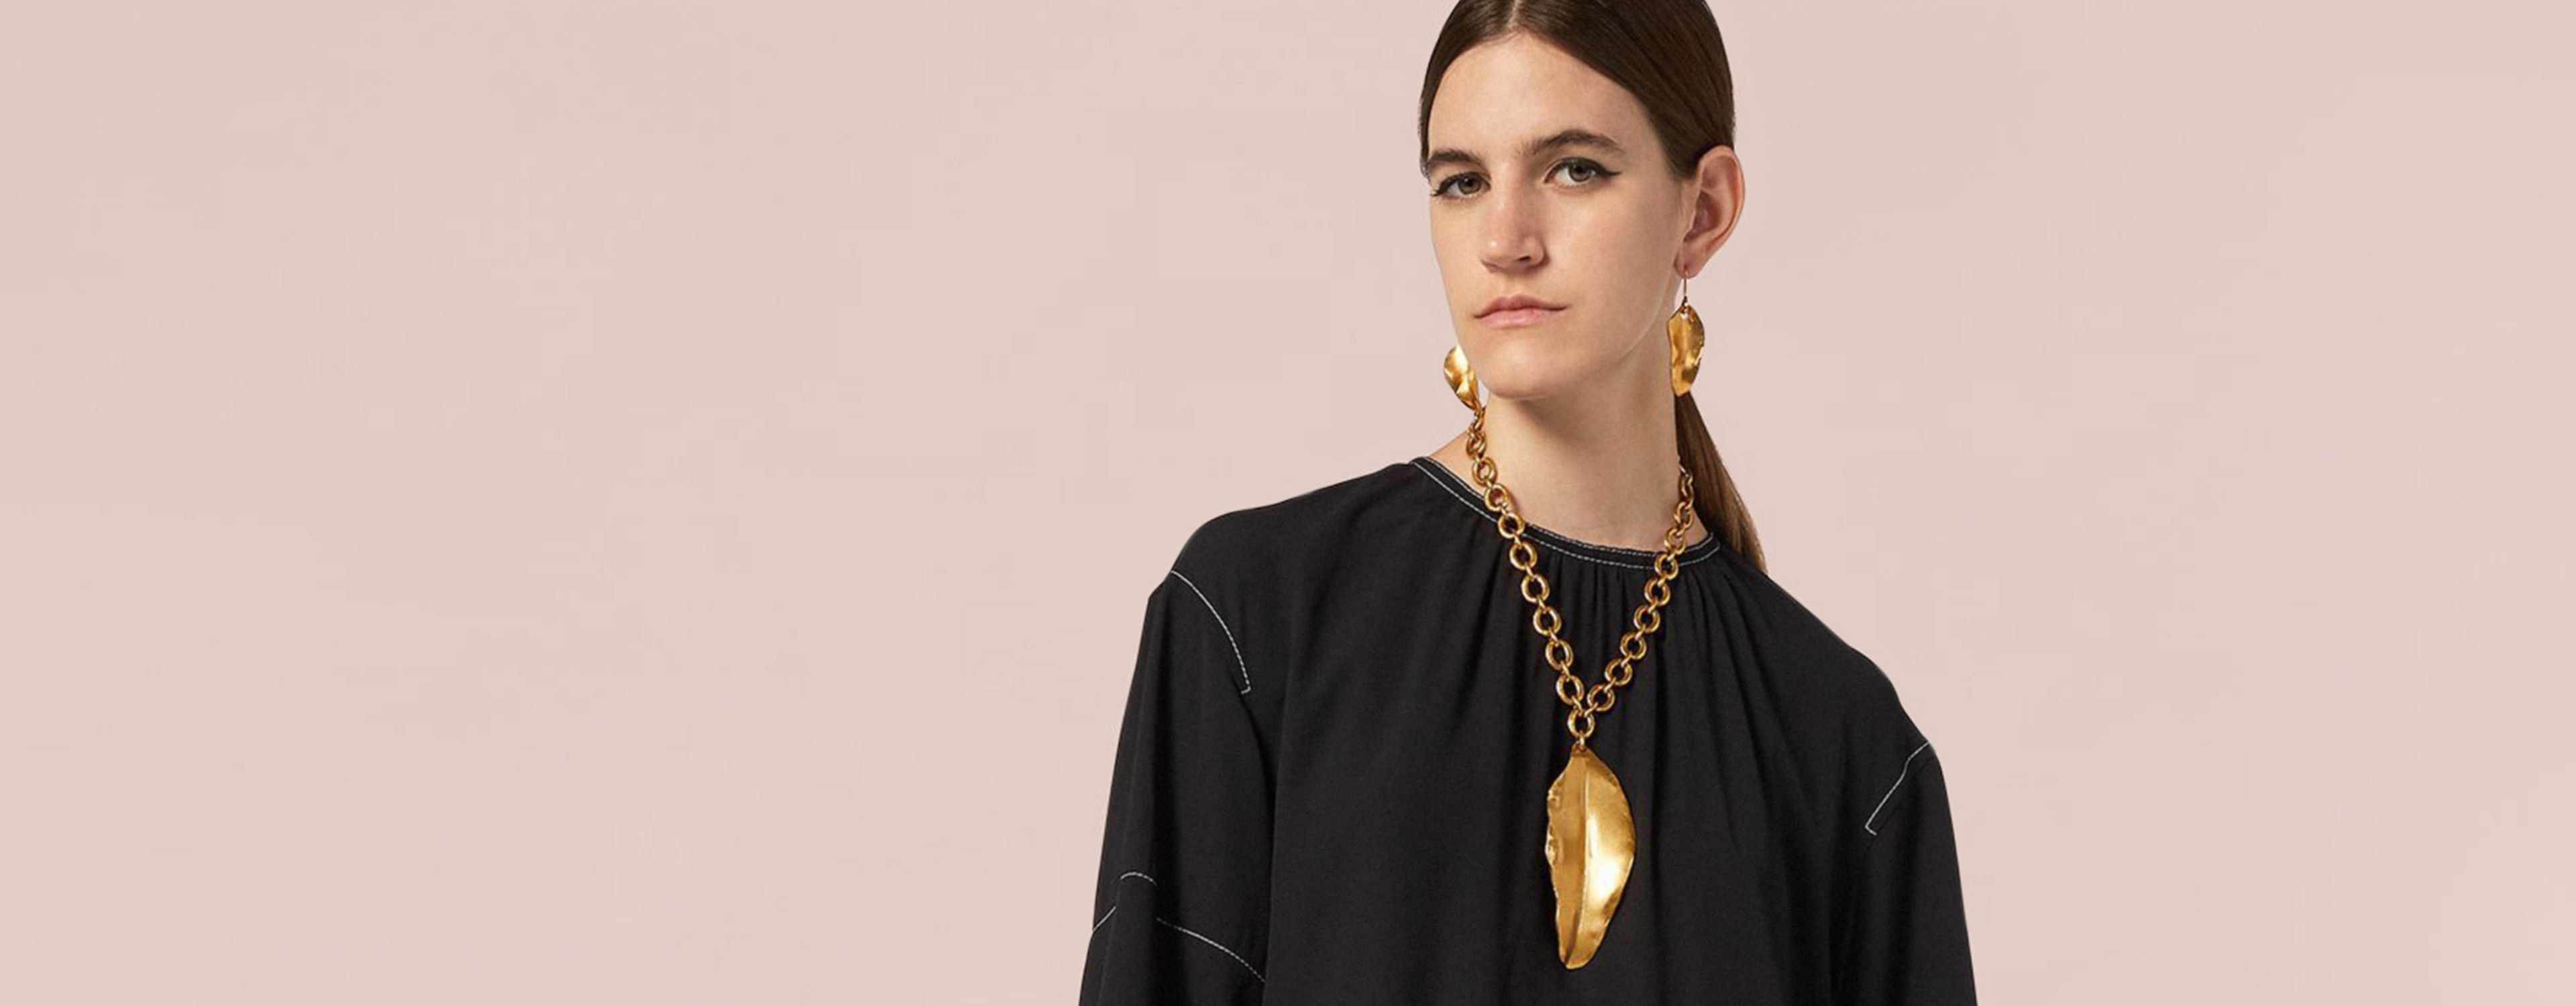 Model wears a floral-printed dress and a chain necklace with a golden leaf